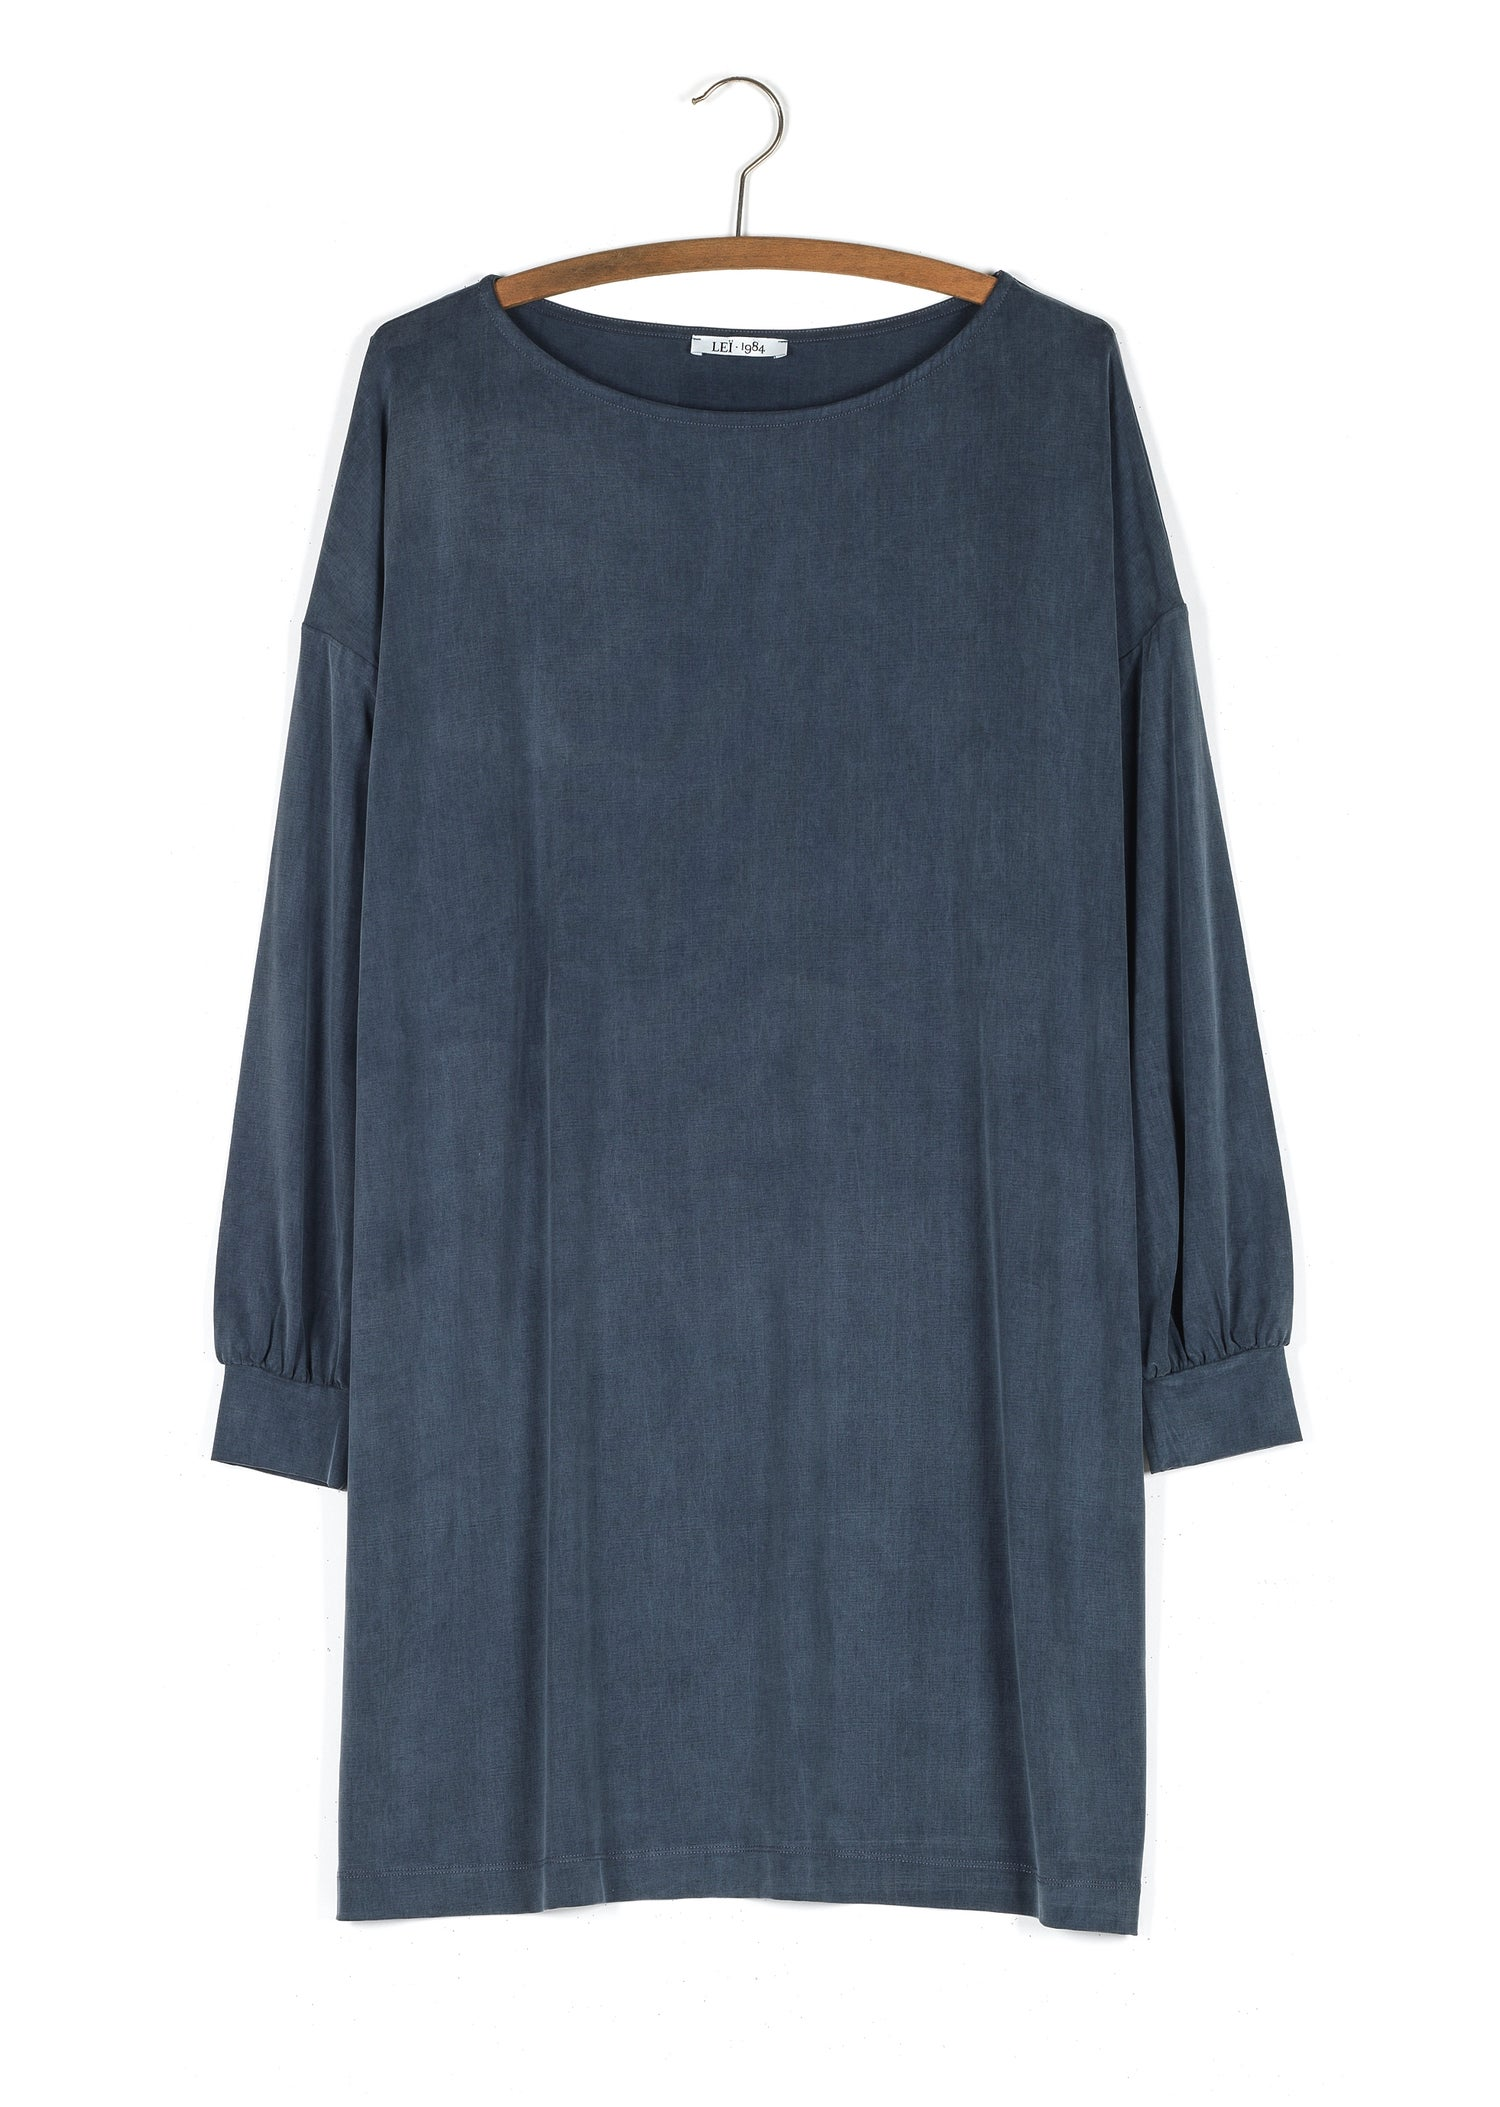 Image of Robe cupro ELIE 125€ -50%